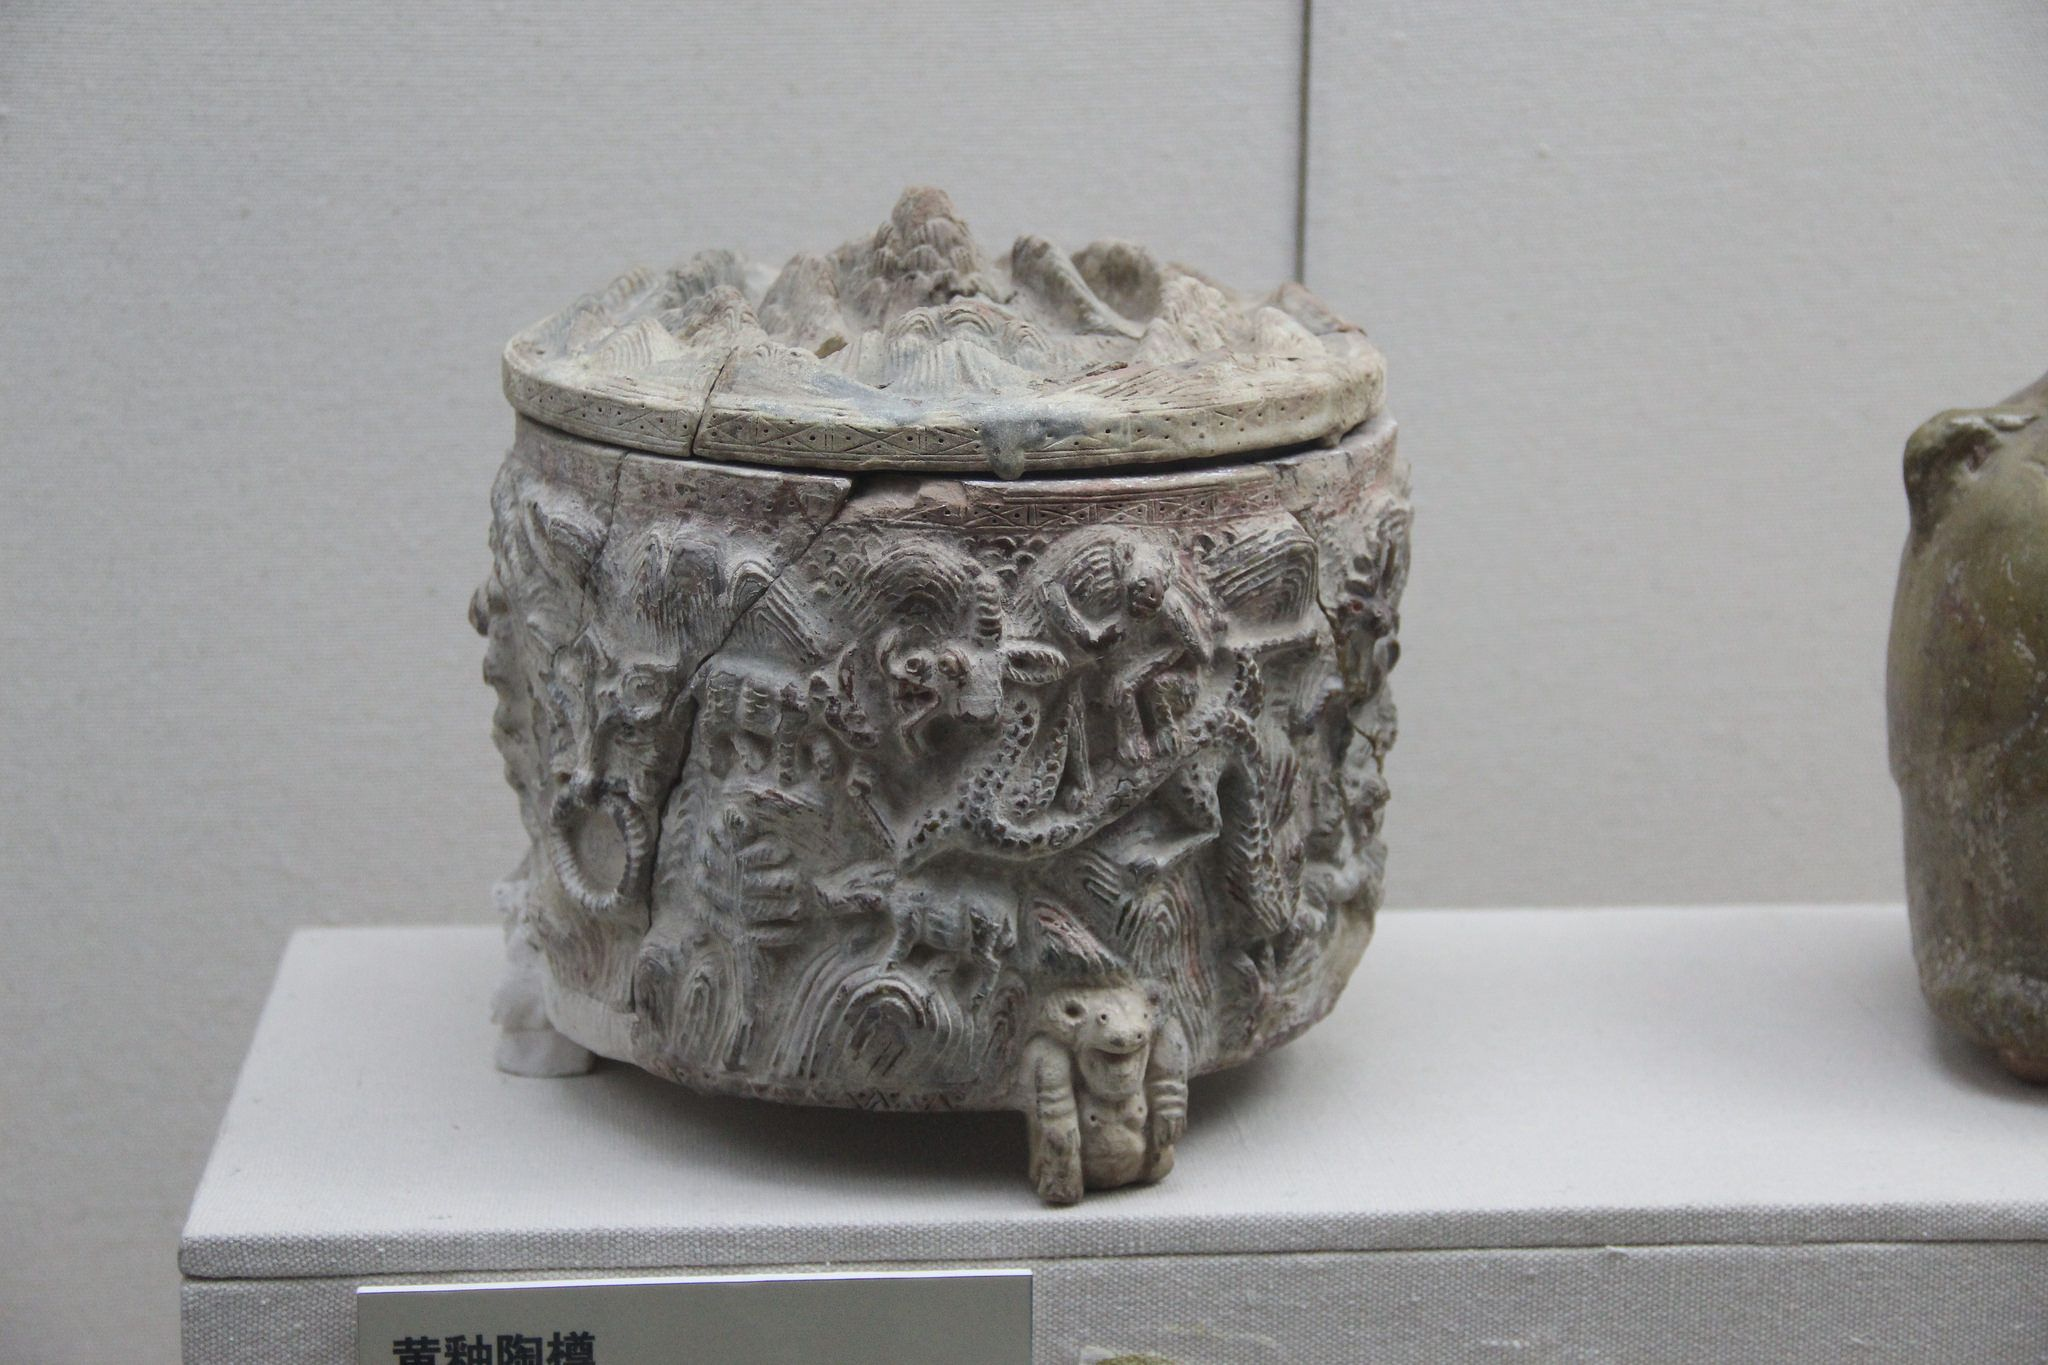 https://flic.kr/p/wcUmVE | Han Pottery Jar | Inner Mongolian History Gallery, Inner Mongolia Museum, Hohhot, China. Complete indexed photo collection at WorldHistoryPics.com.